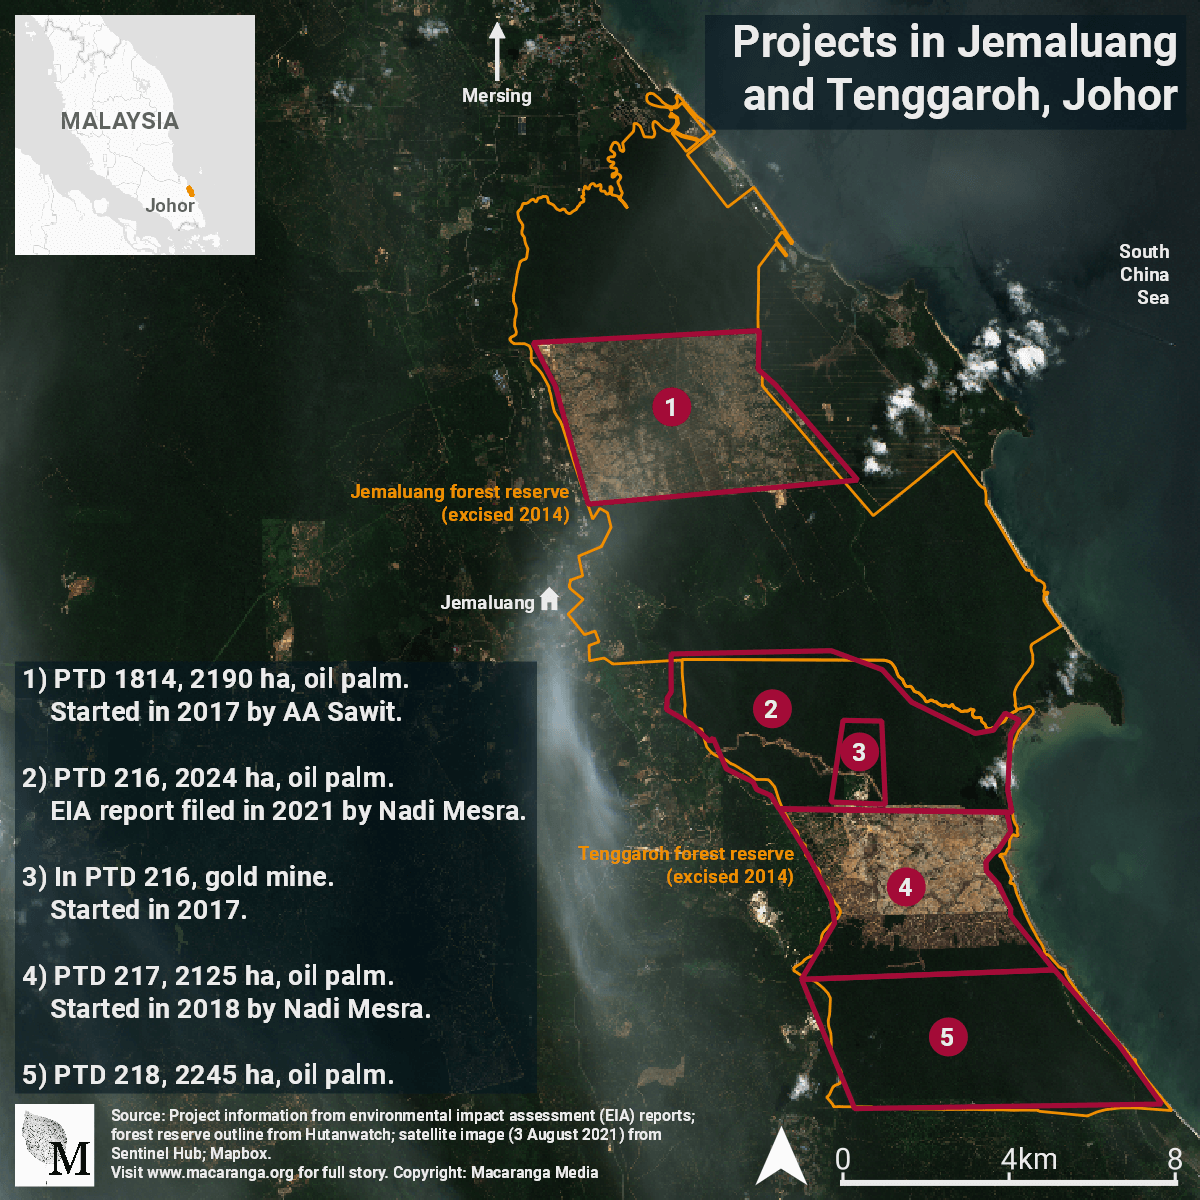 Map of projects in Jemaluang and Tenggaroh forests, Johor